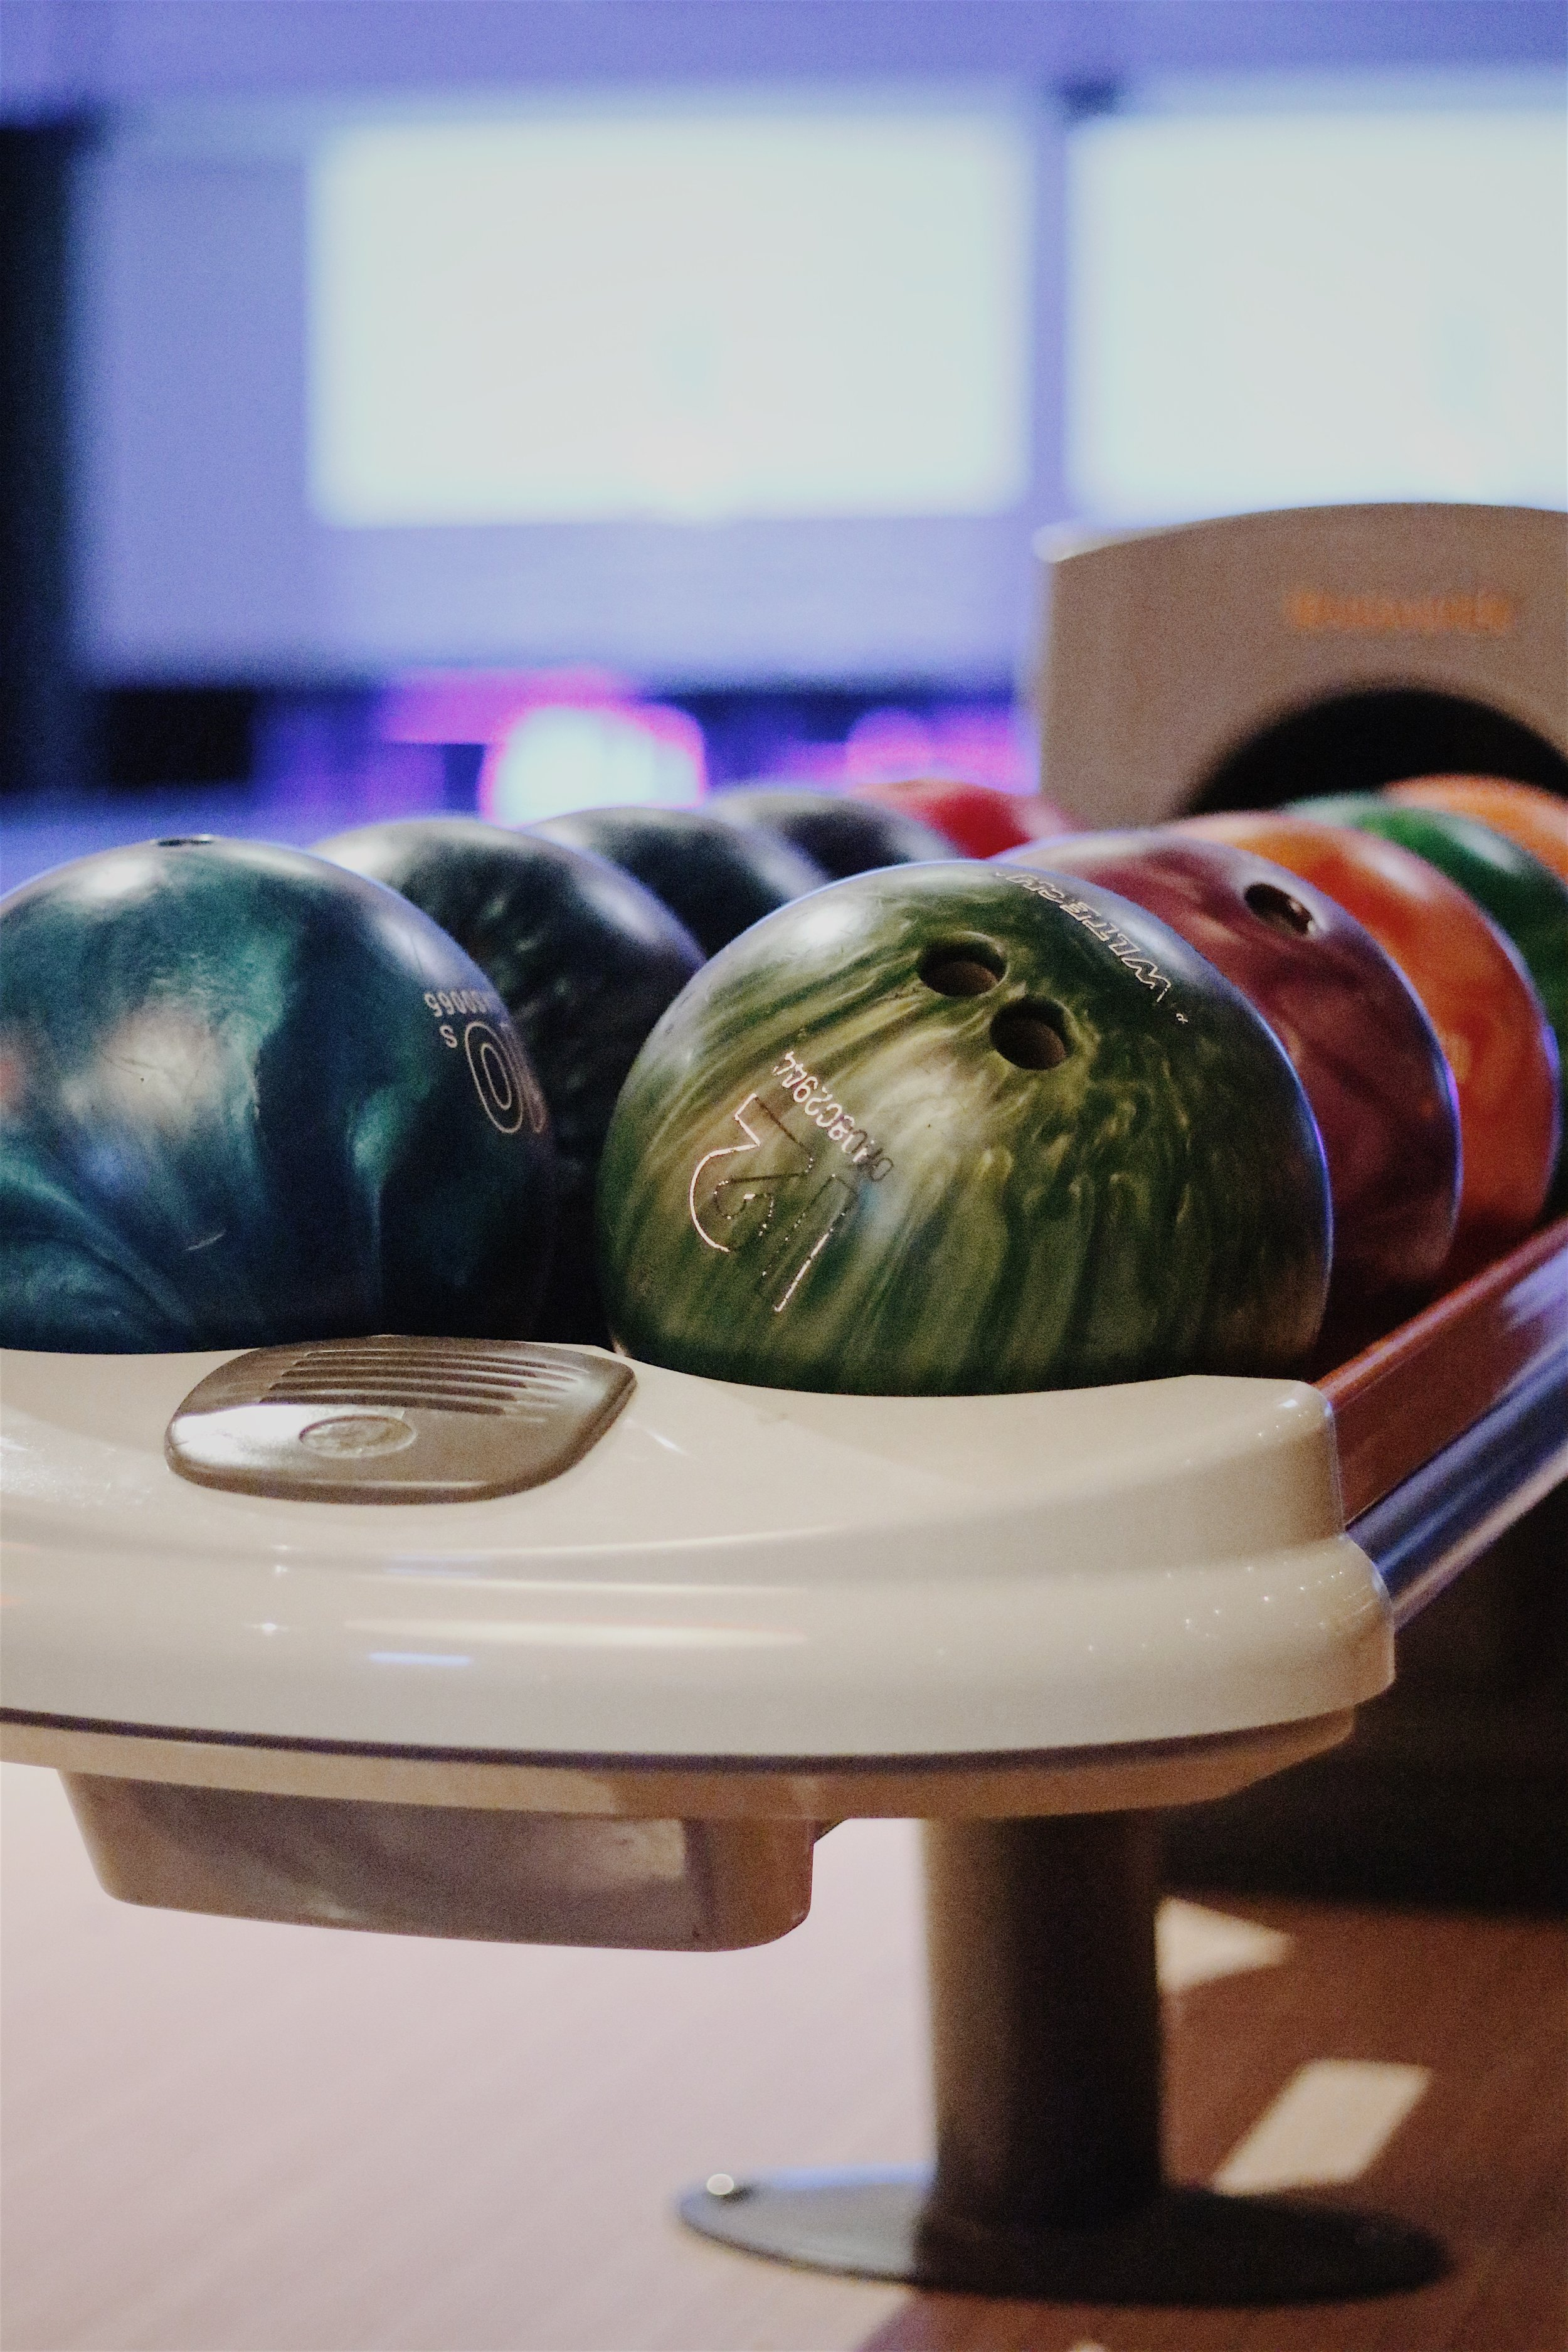 bowling - Chippers Lanes has games, food, and family fun for everyone. Arcade, bowling, laser tag, live music… as well as a full bar and beer on tap.